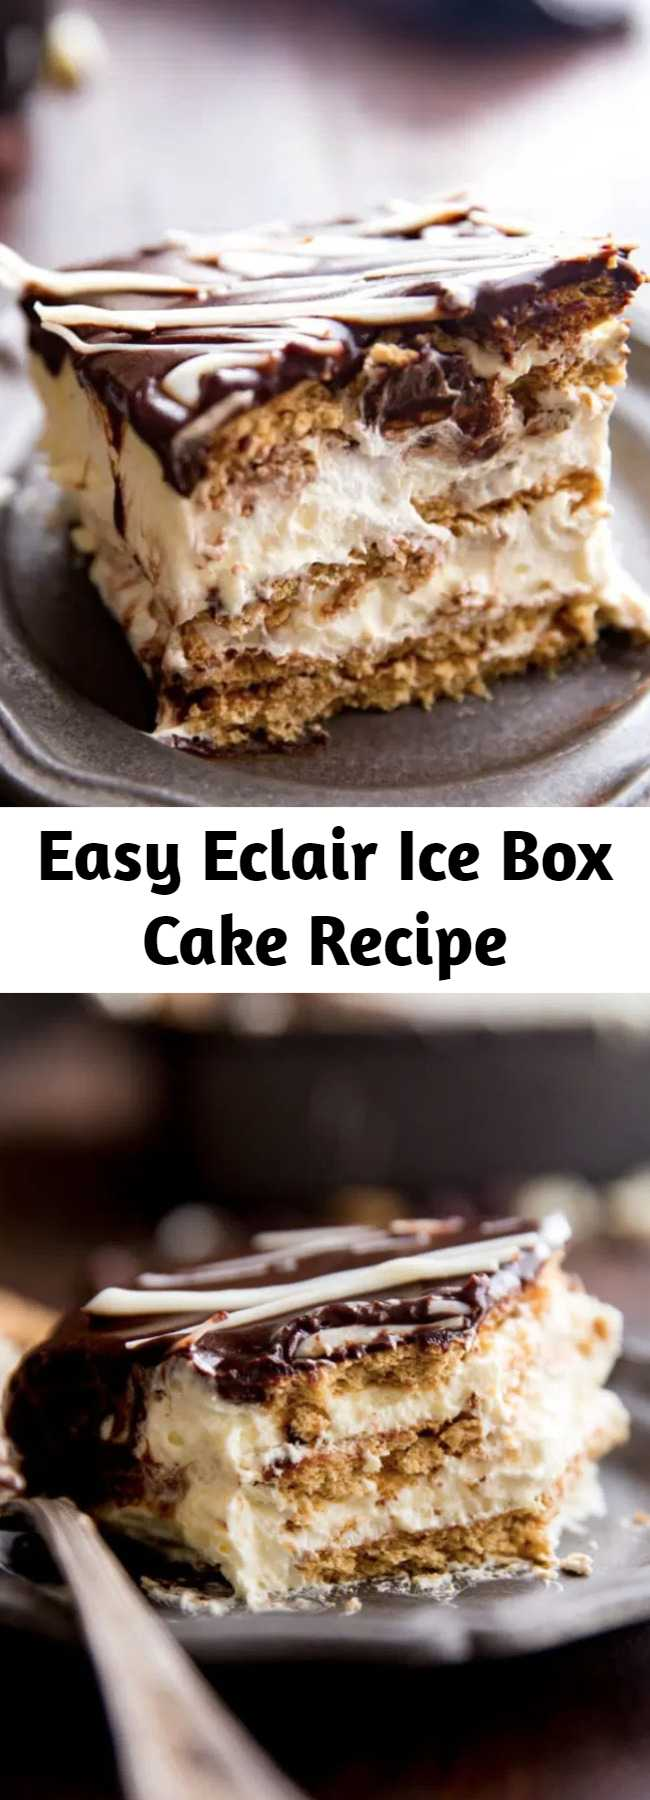 Easy Eclair Ice Box Cake Recipe - No bake ice box cake that tastes like eclairs. No baking, no fuss, this easy ice box cake is absolutely delicious and just so fun. Rich chocolate topping, fun vanilla custardy center, and graham crackers. It tastes like an eclair in cake form! And is way easier than baking eclairs. This is my favorite dessert. You can impress your friends and family, with this crowd favorite!